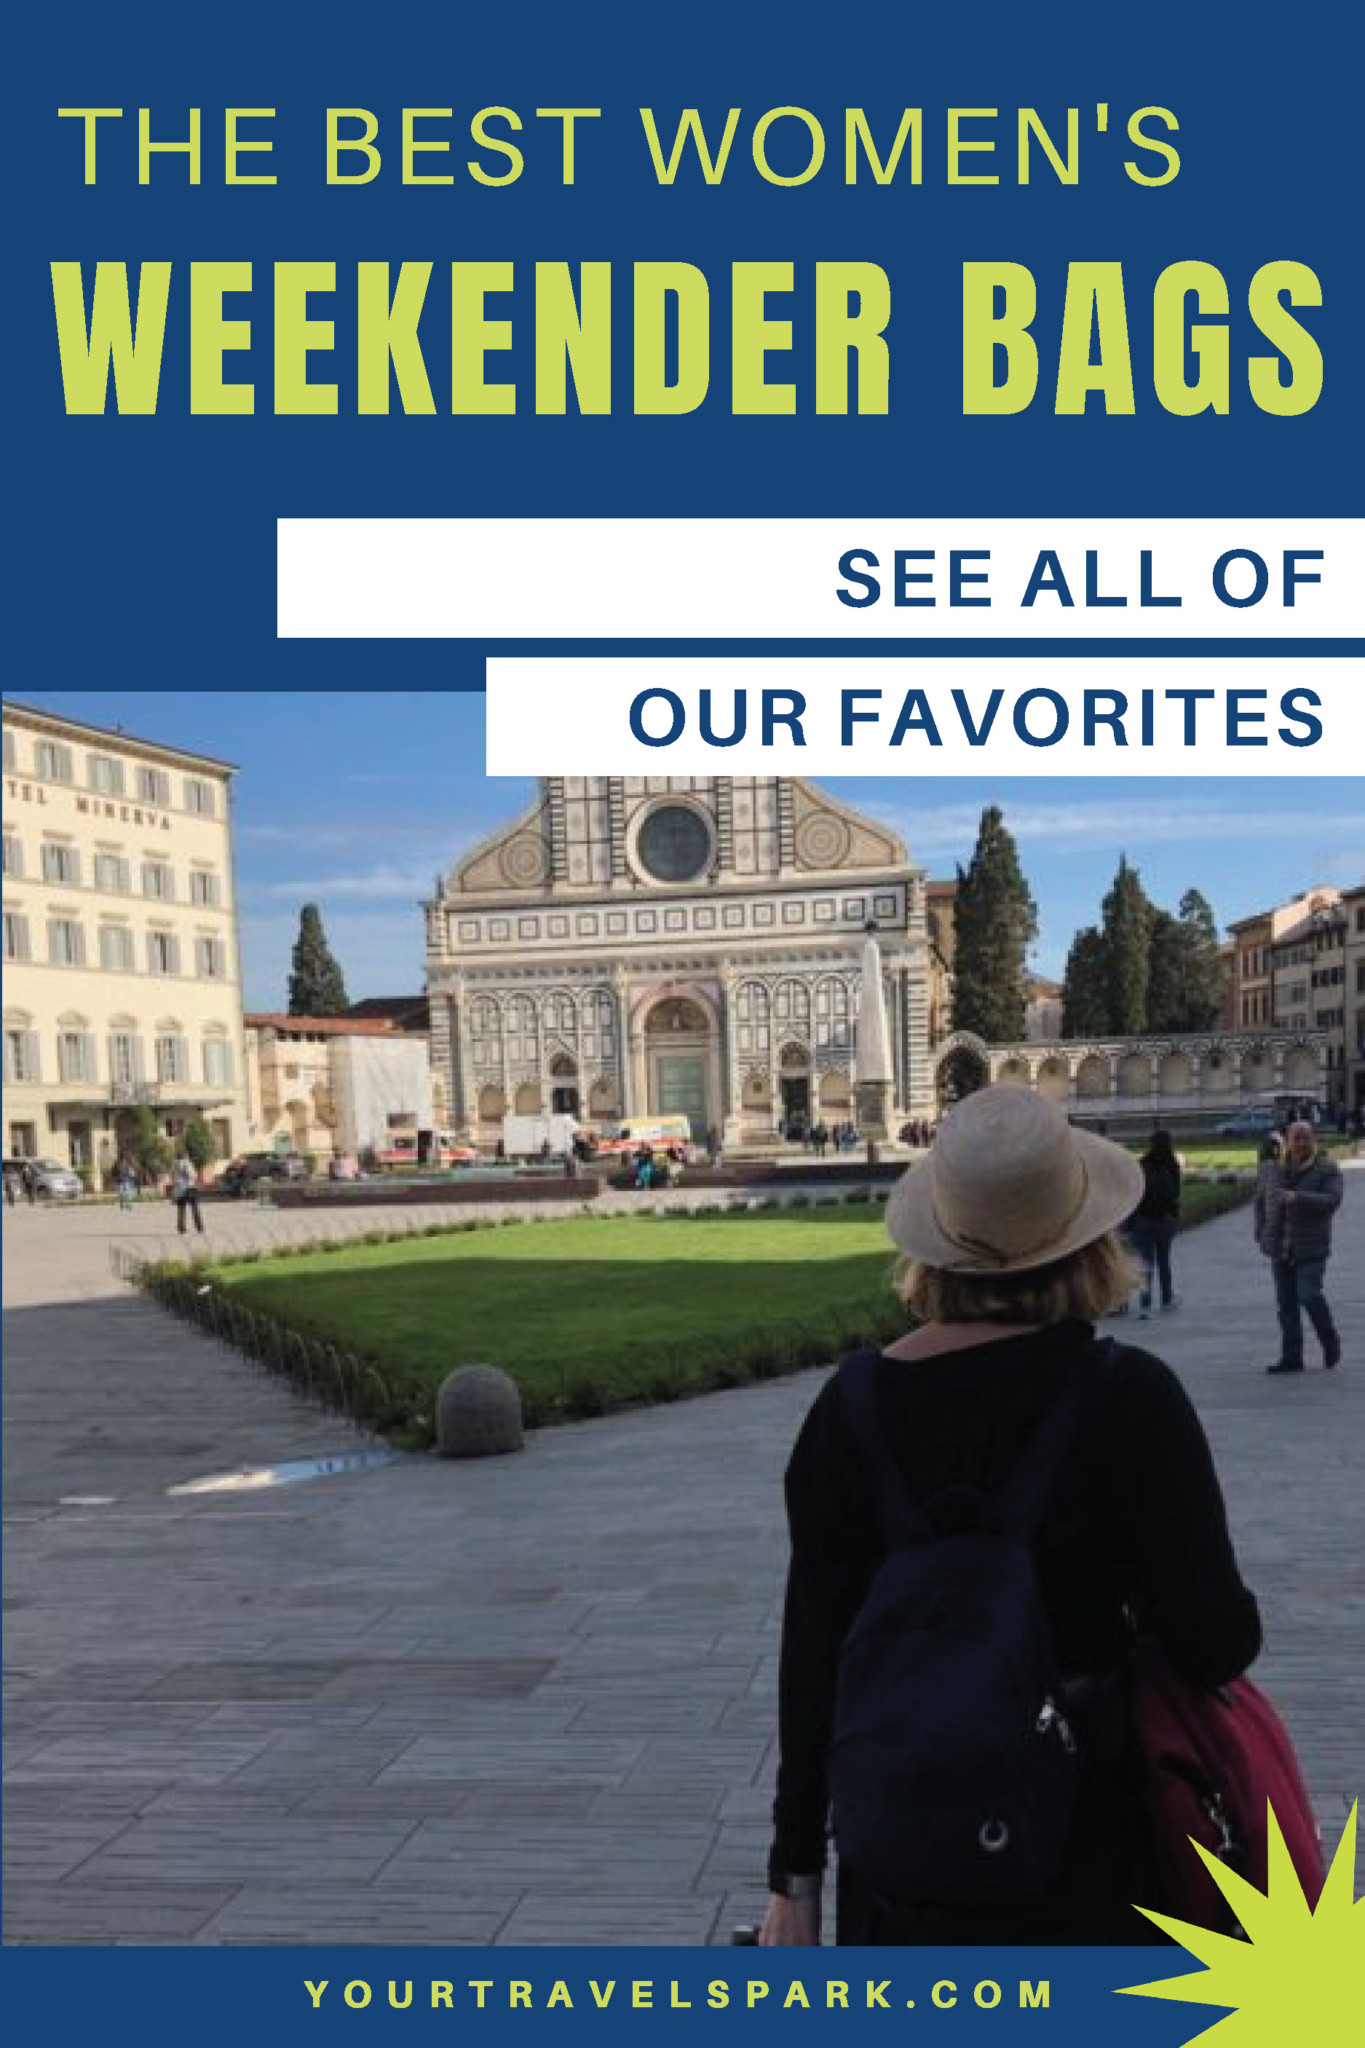 Weekender bags can be perfect for a short trip or a second piece of luggage. Here are our favorite weekender bags for women. #weekenderbags #weekender #weekenderforwomen #weekendersforwomen #womensbags #travelbags #womenstravelbags #womensluggage #luggaeg